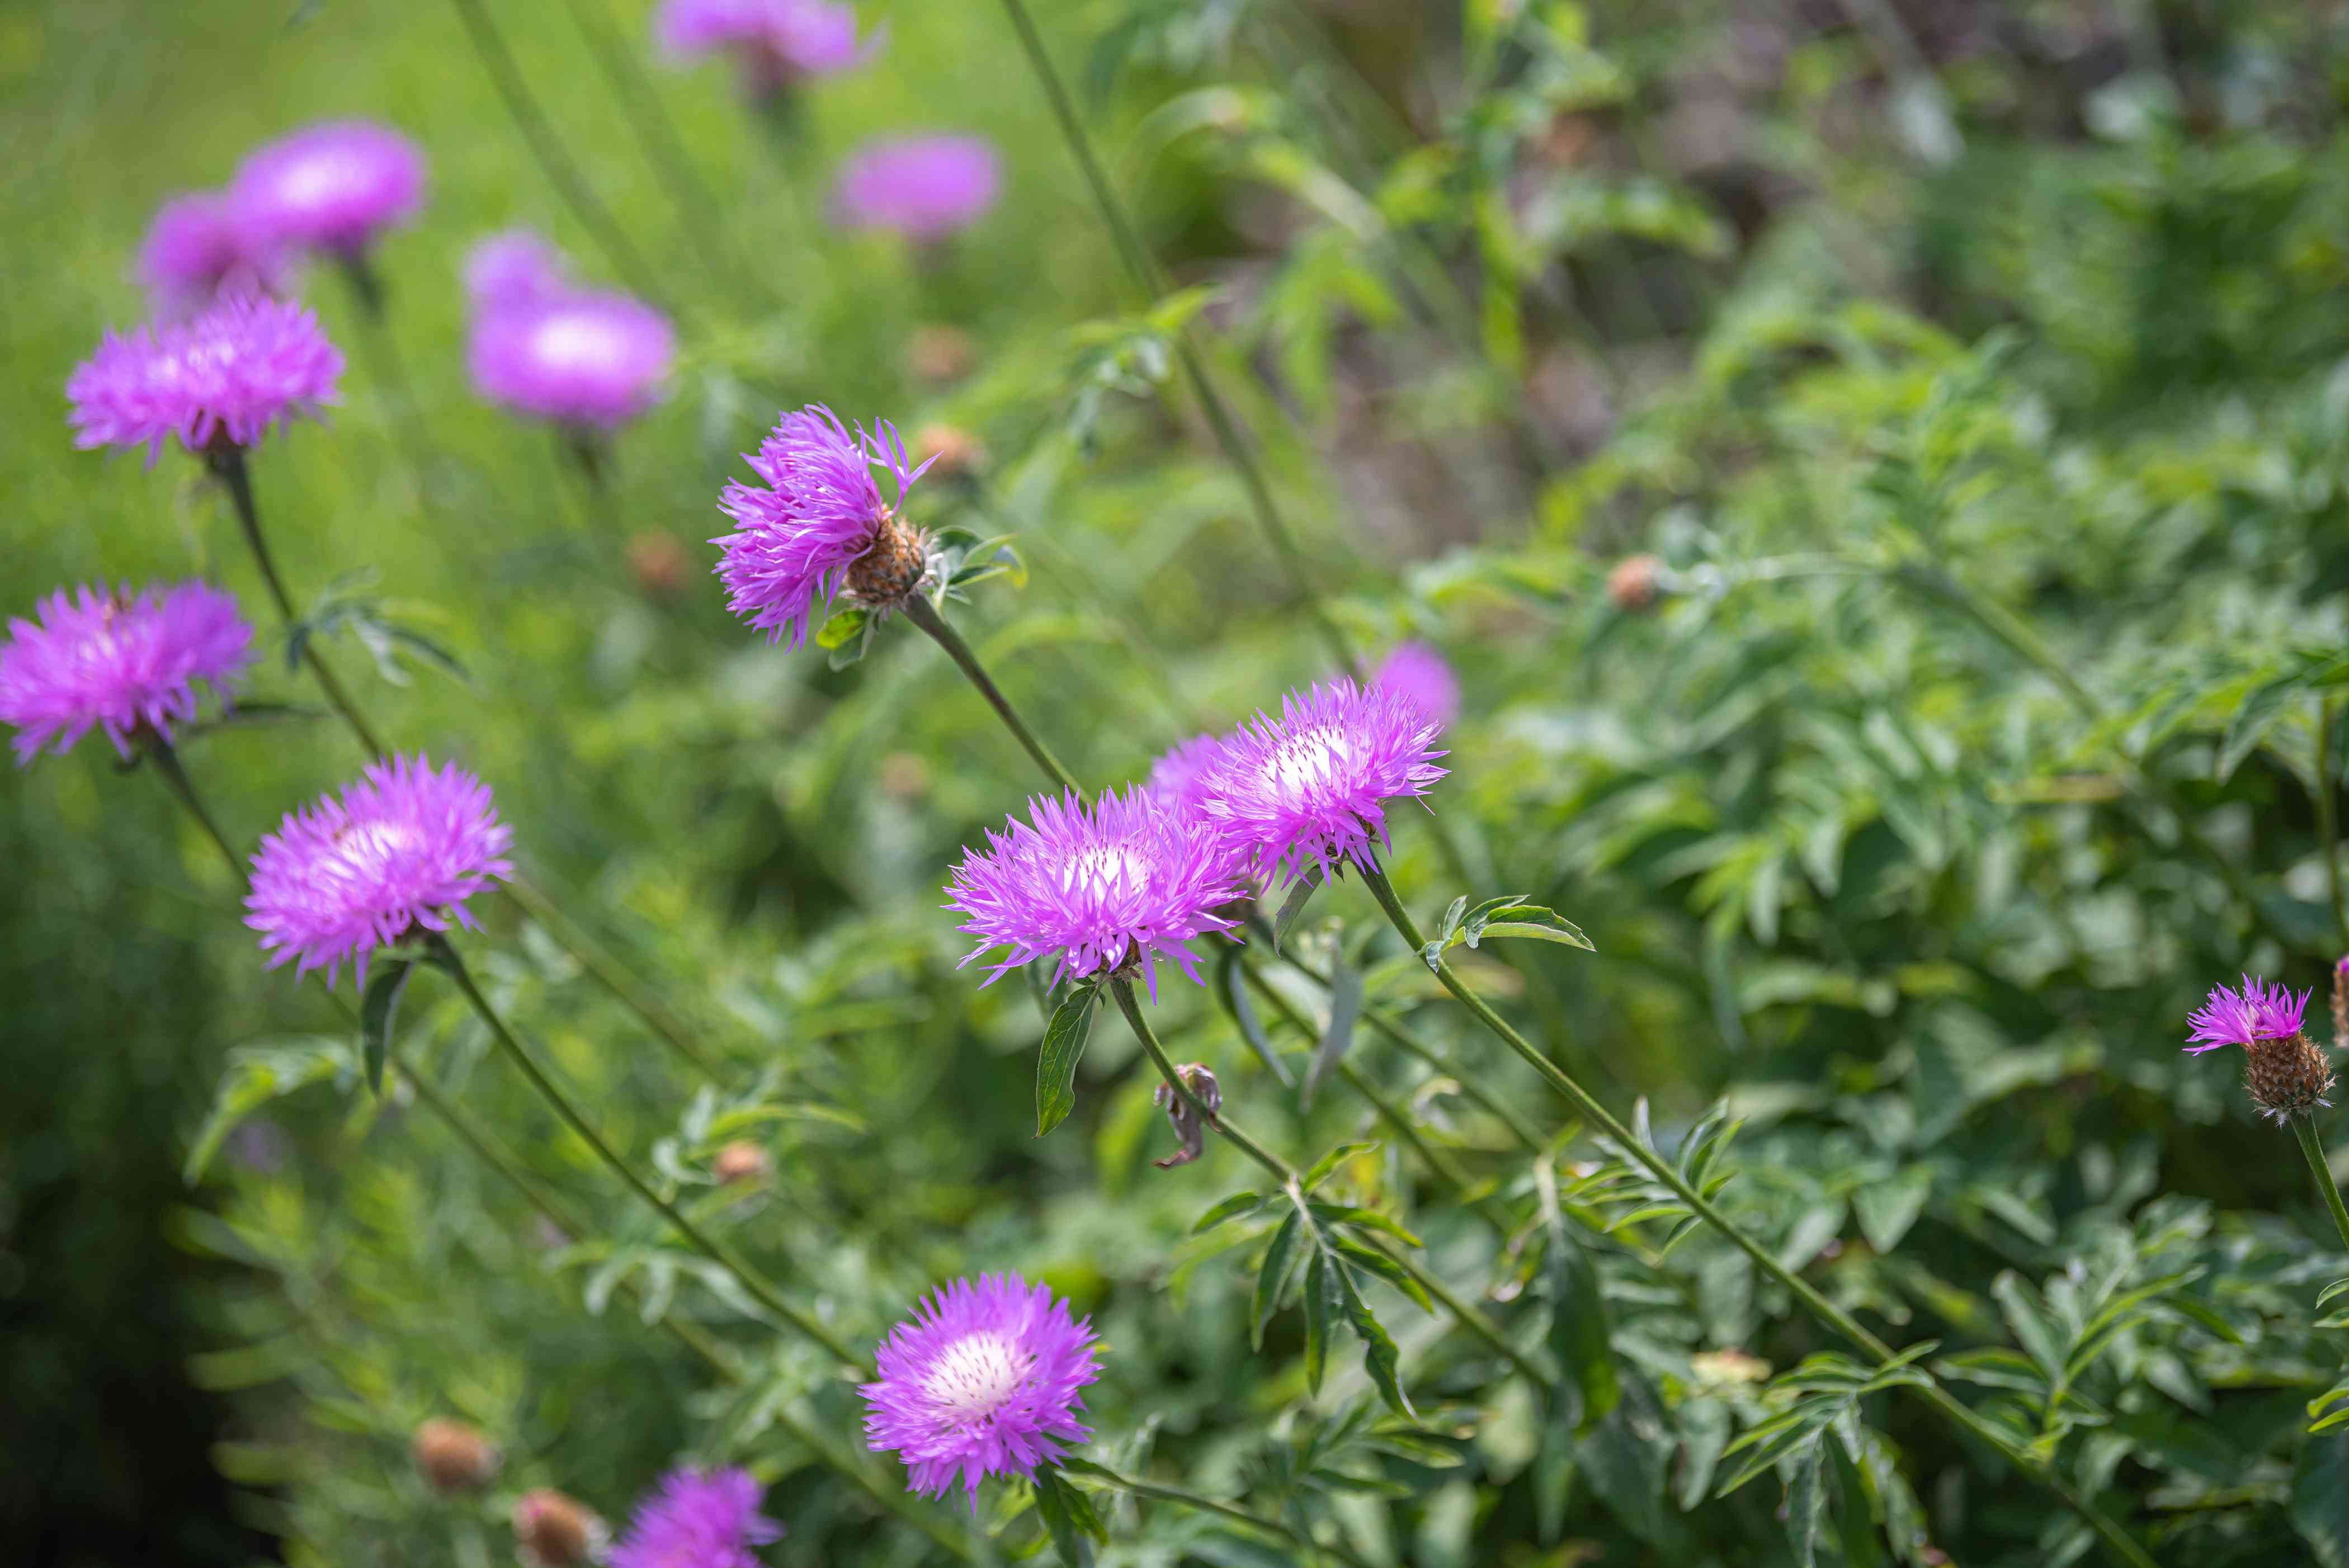 Basket flower with bright purple thistle-like petals on extending thin stems with white centers